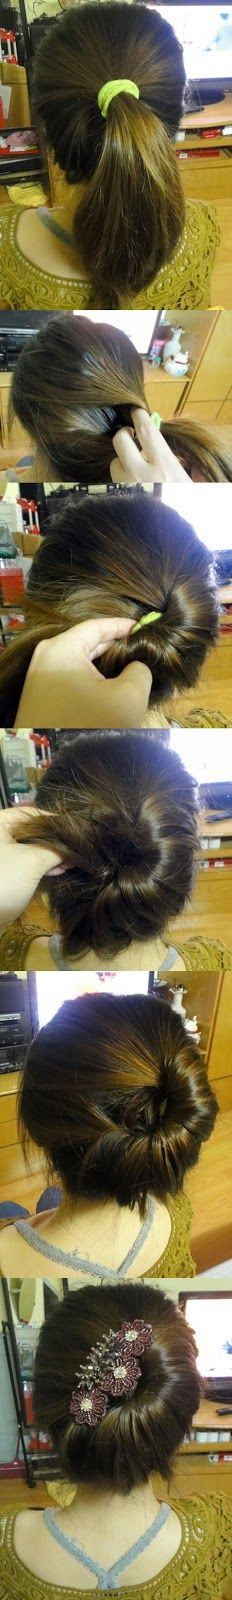 Make A Chignon For Your Hair | hairstyles tutorial